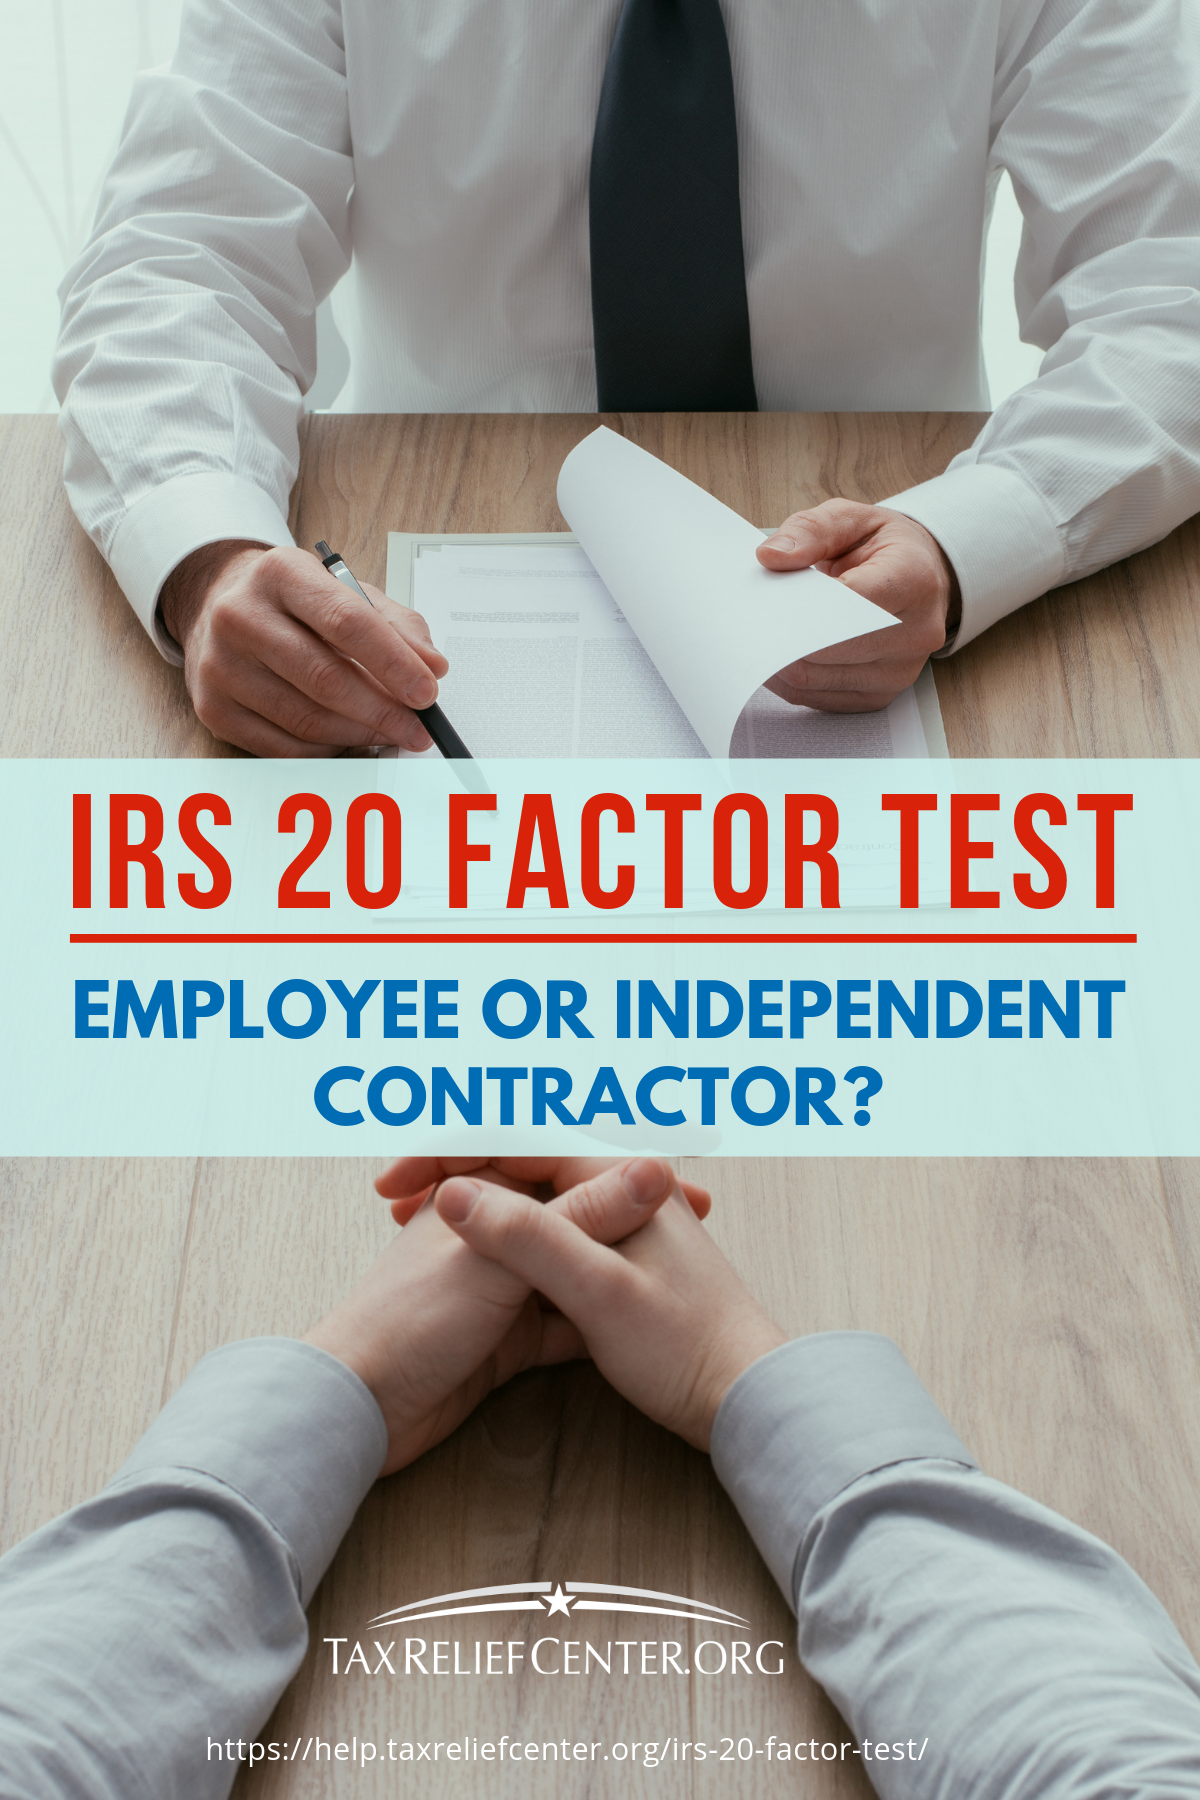 The IRS 20 Factor Test: Employee Or Independent Contractor? https://help.taxreliefcenter.org/irs-20-factor-test/